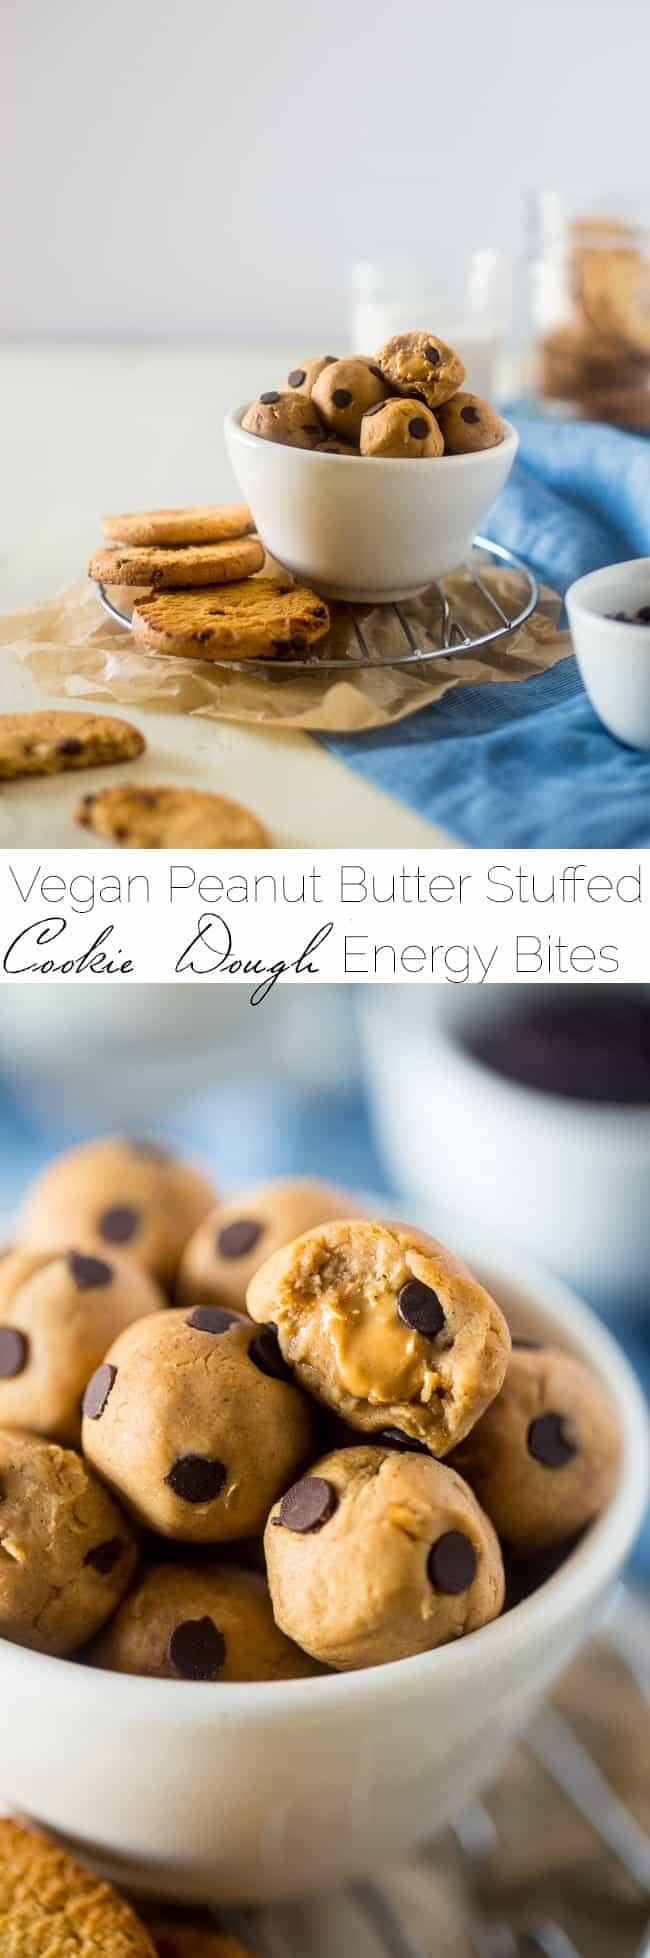 Peanut Butter Stuffed Vegan Cookie Dough Bites - SO easy to make and loaded with peanut butter and chocolate chips! You would never know they're secretly healthy, gluten free and only 65 calories! | Foodfaithfitness.com | @FoodFaithFit